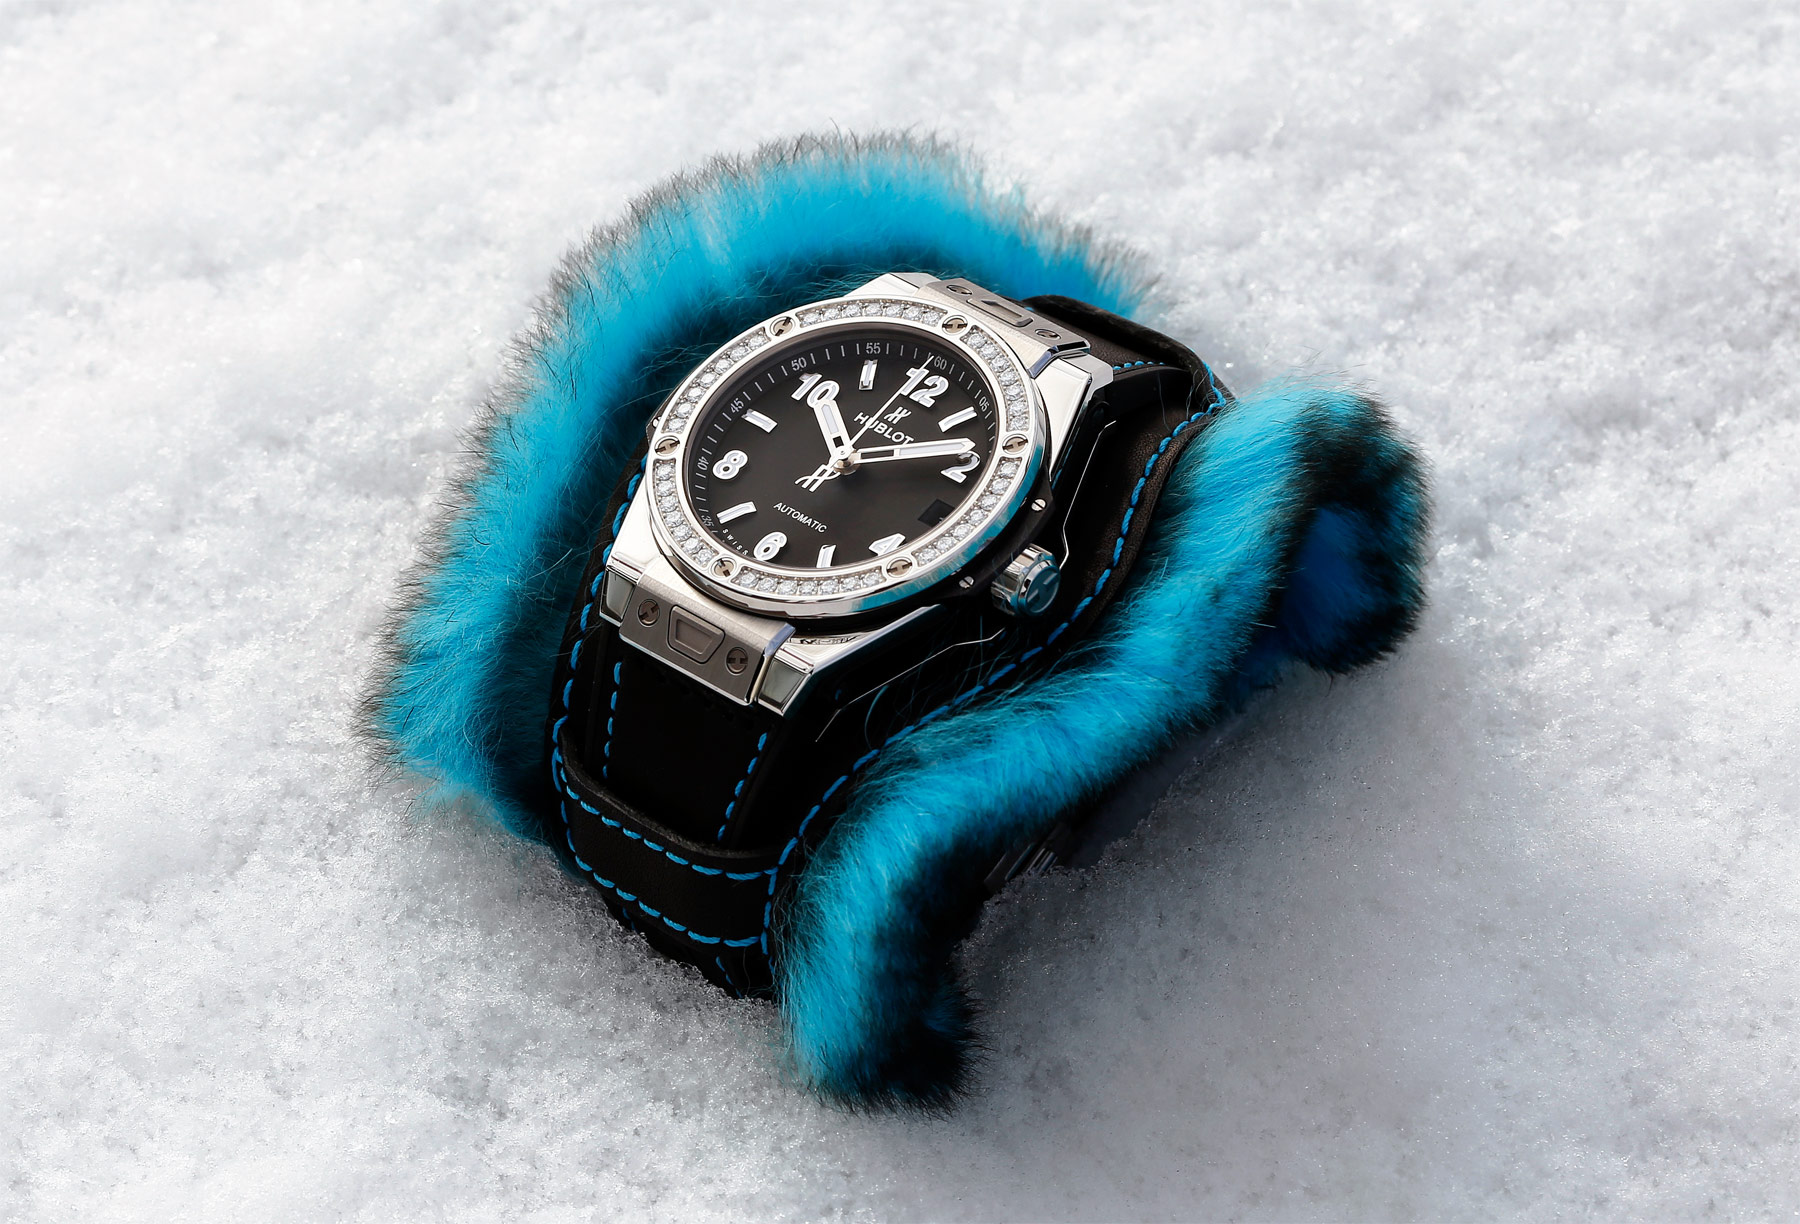 Hublot Goes 'Fluffy' With The Big Bang One Click Cuddly Cuff Collection